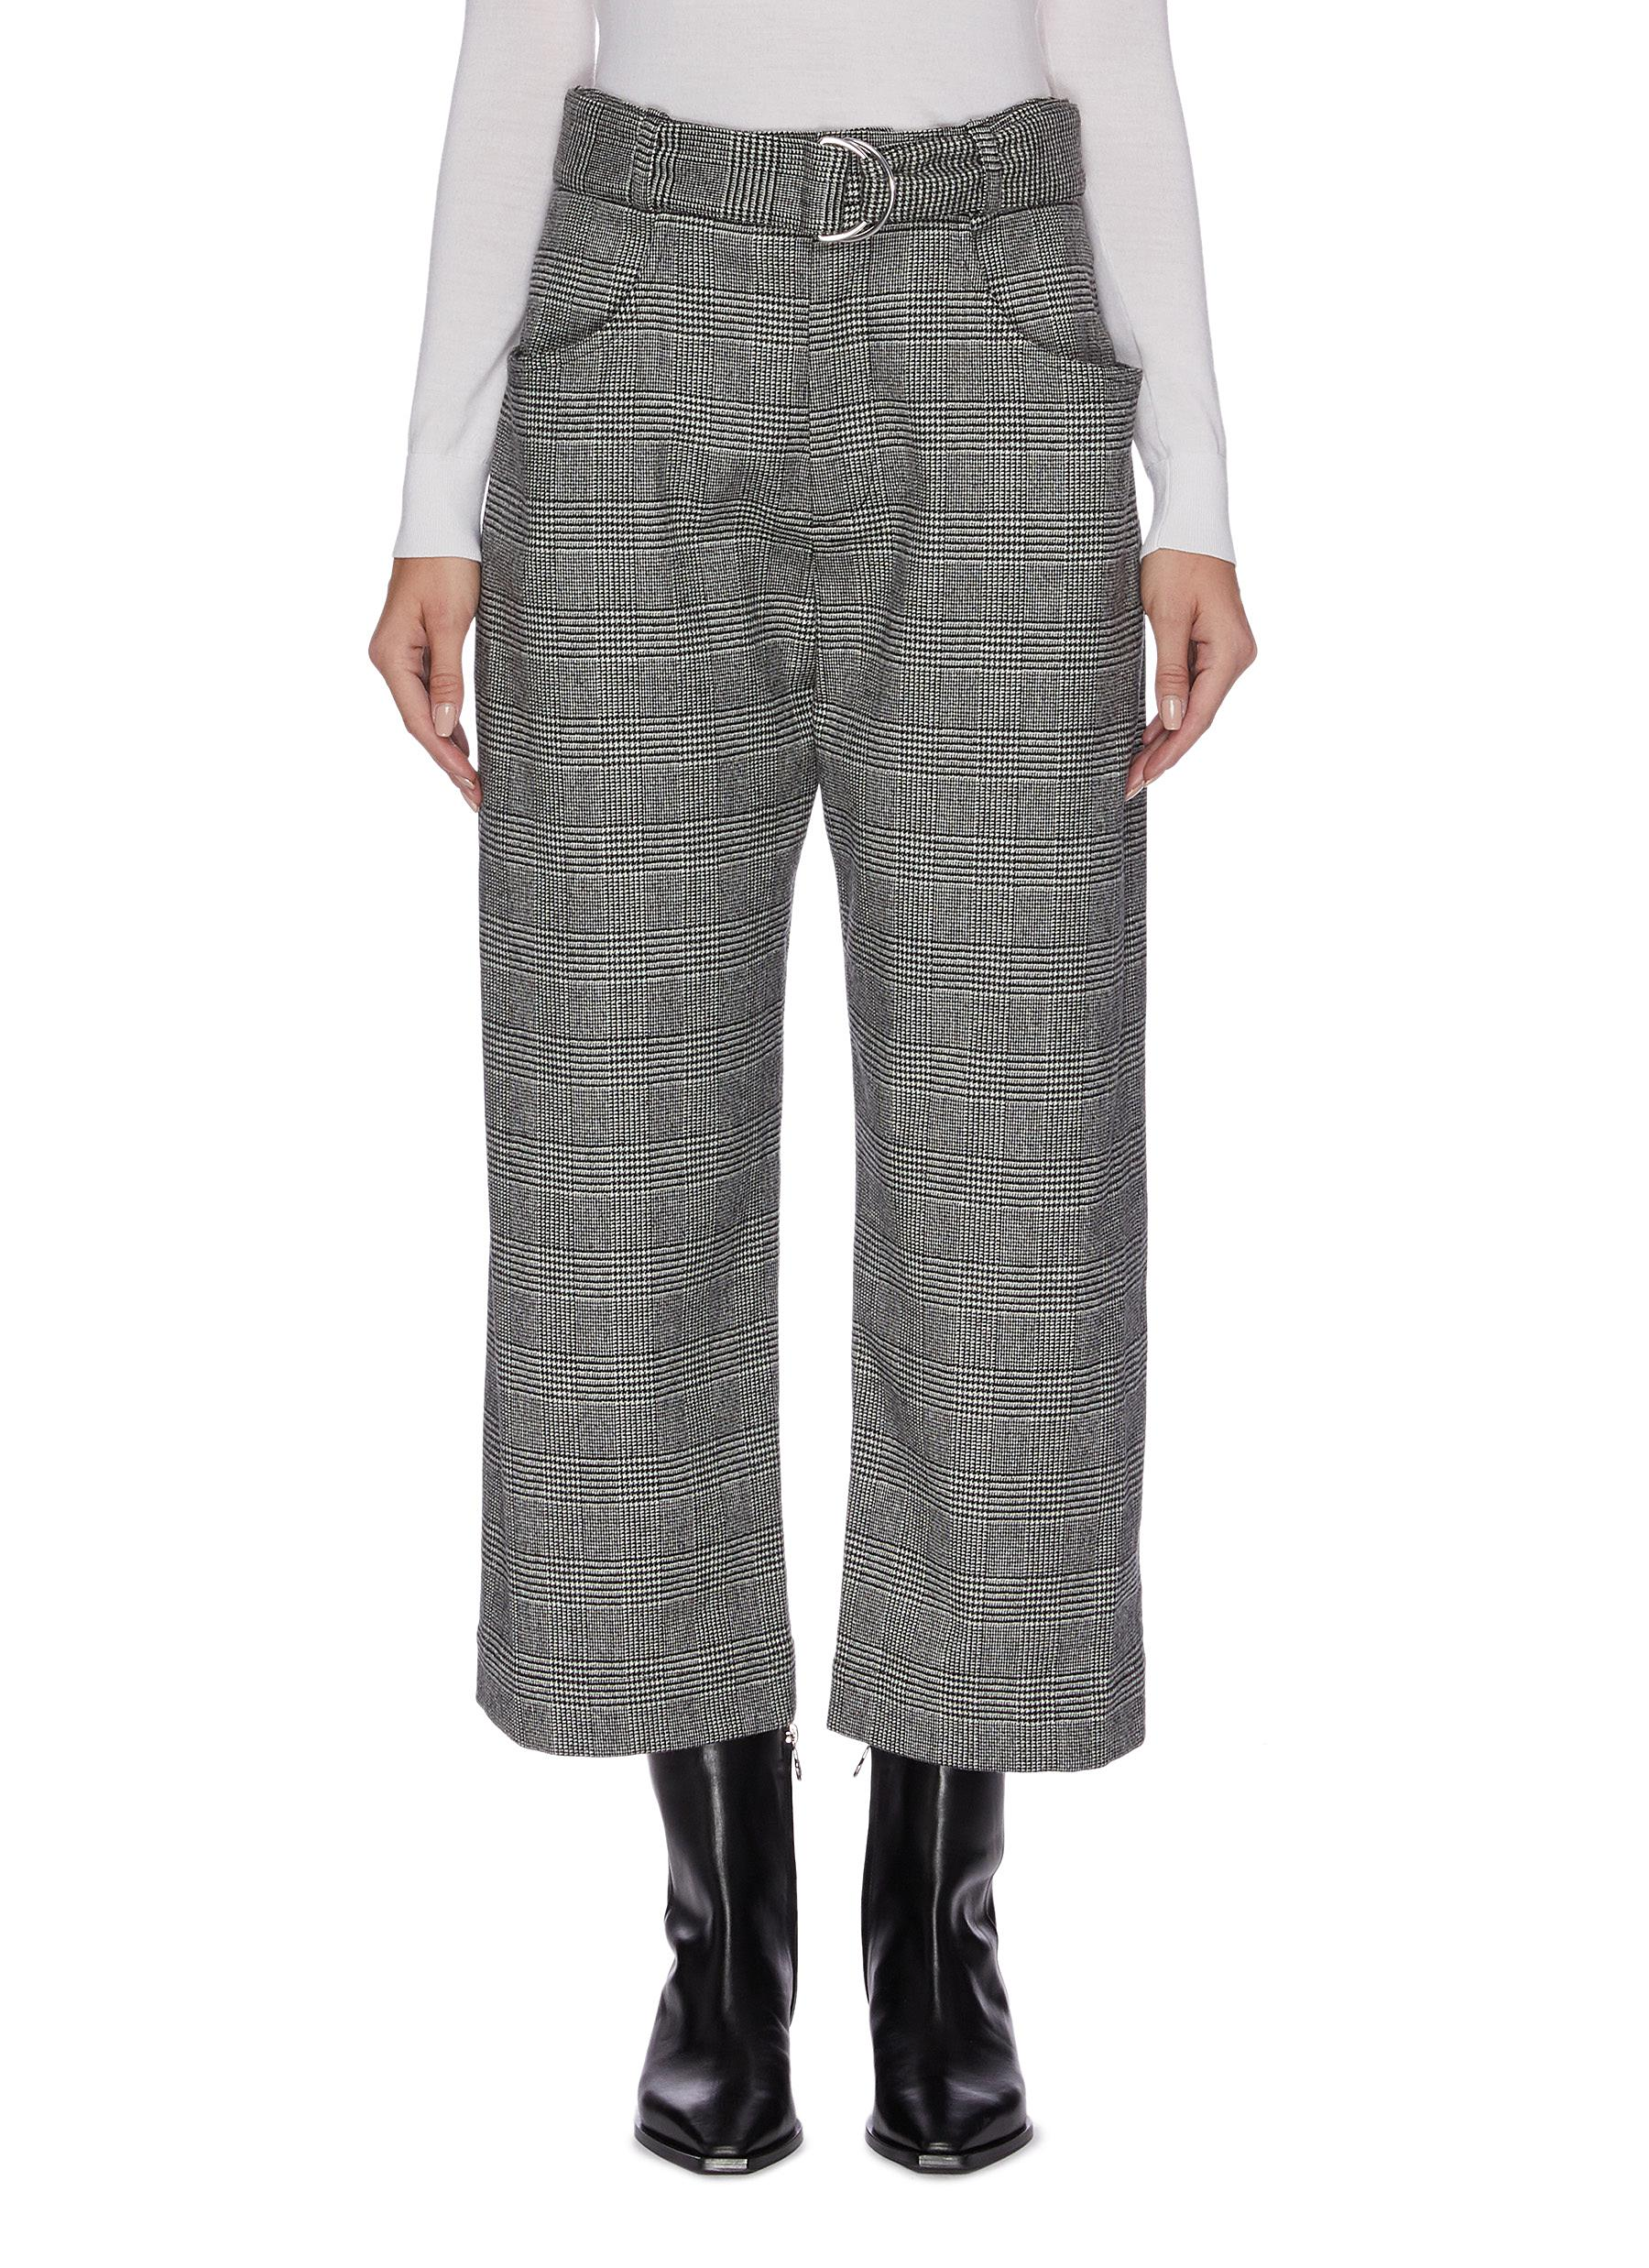 Belted check plaid suiting pants by Proenza Schouler